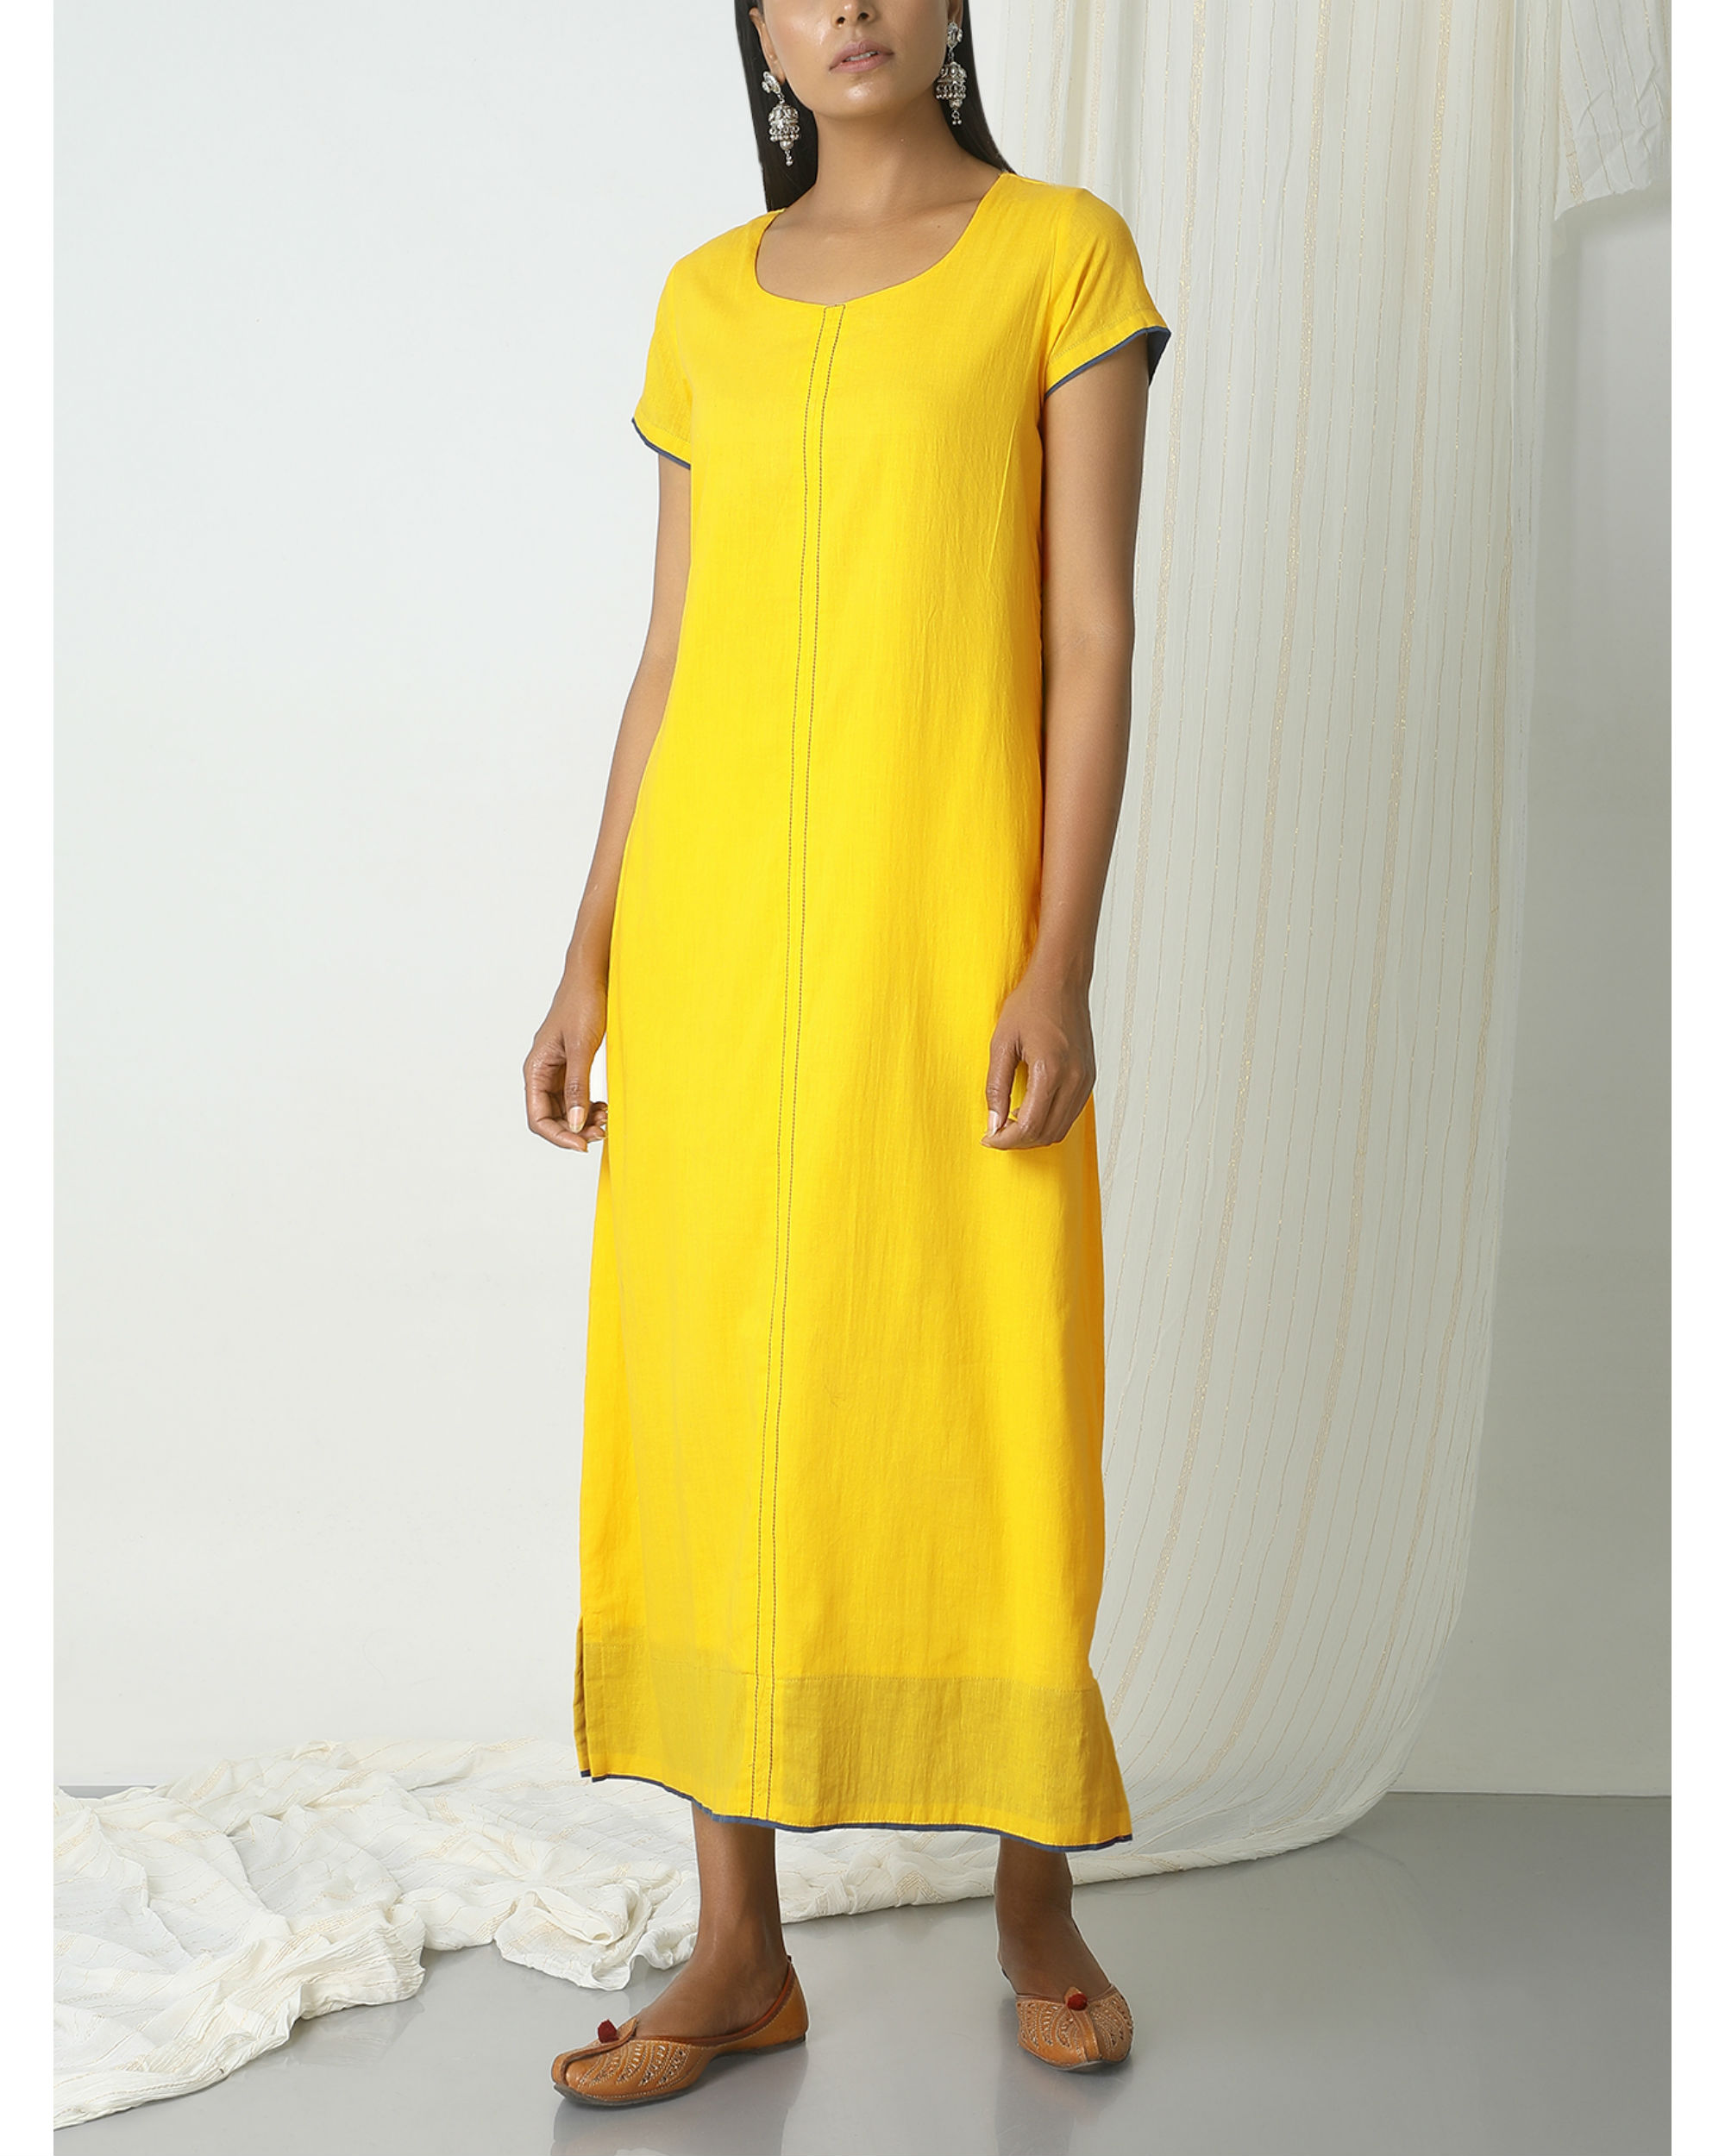 Yellow box kurta dress